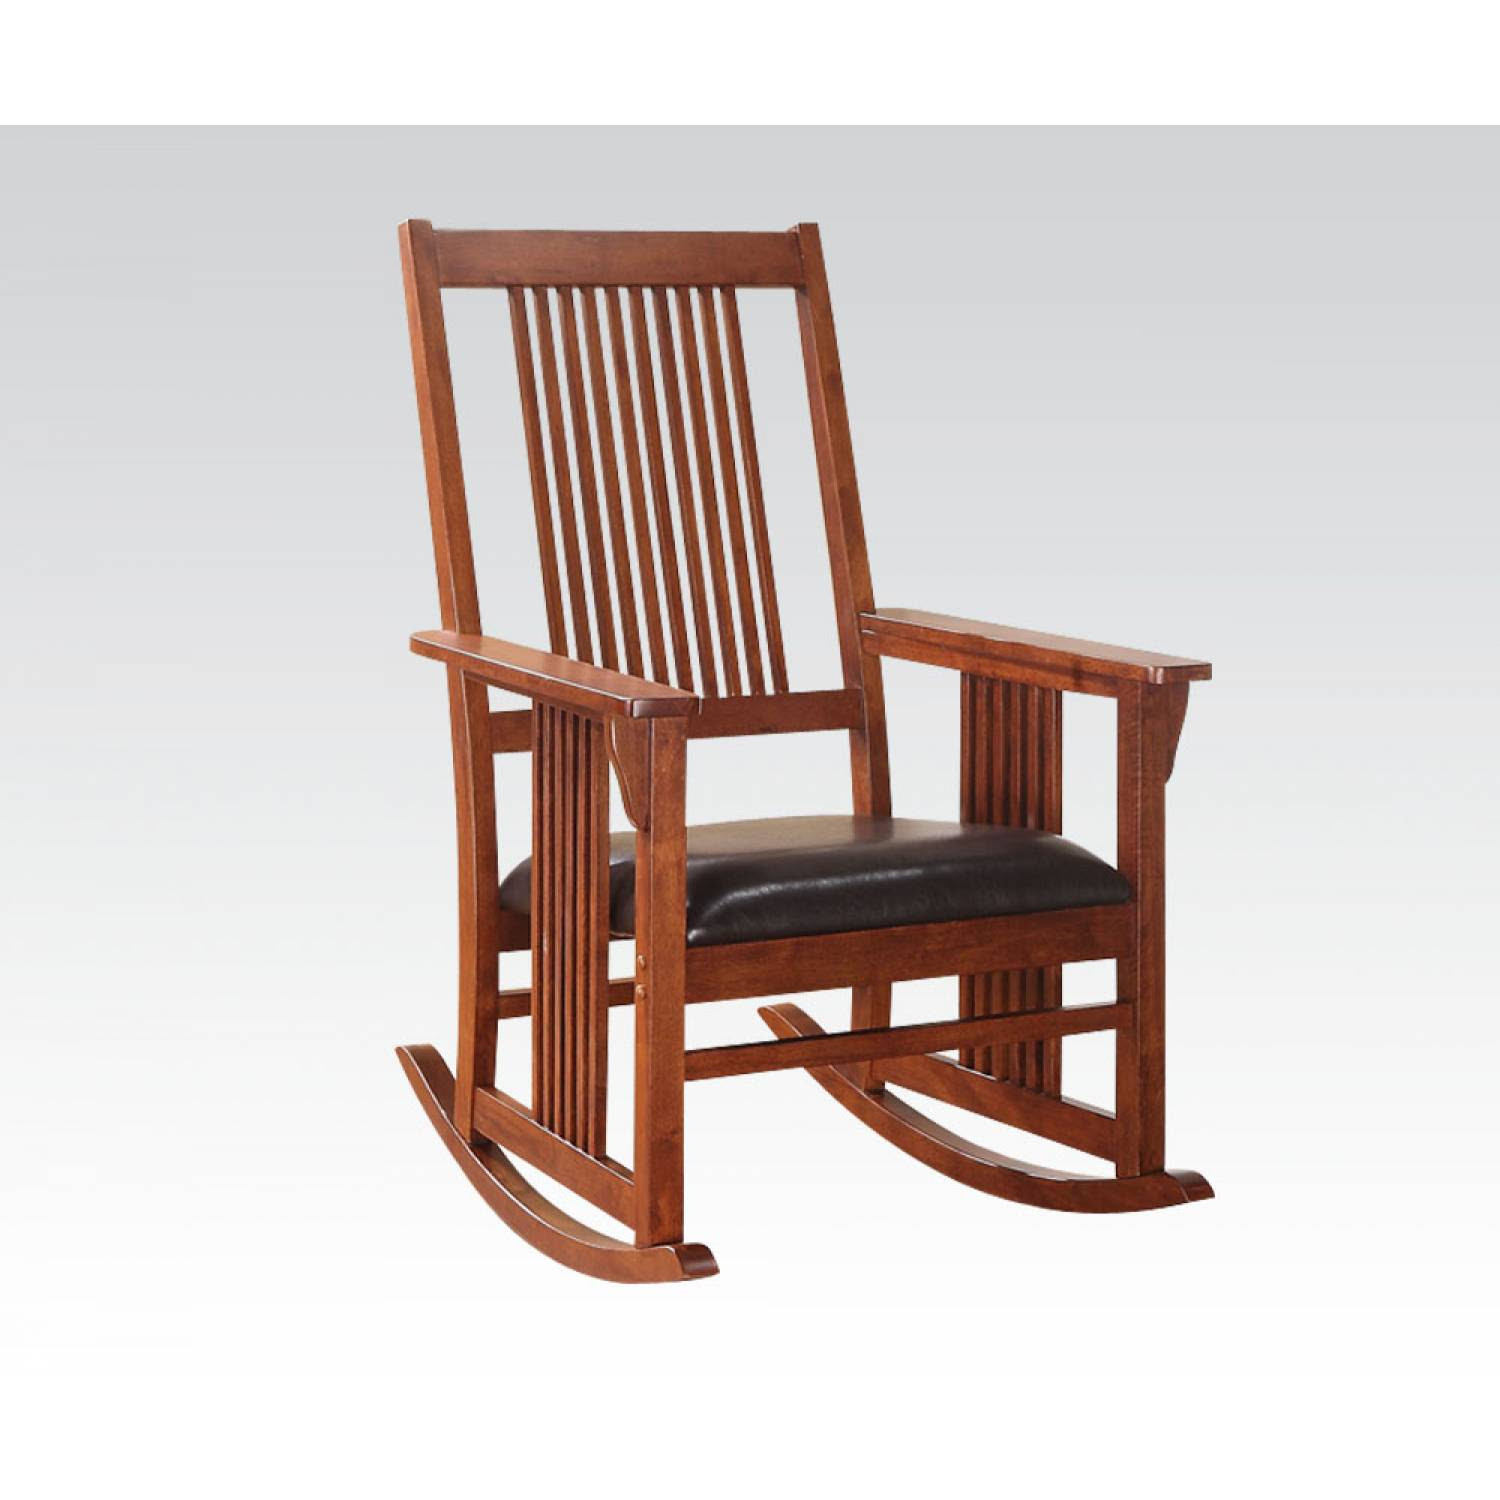 ACCENT ROCKING CHAIR 59214